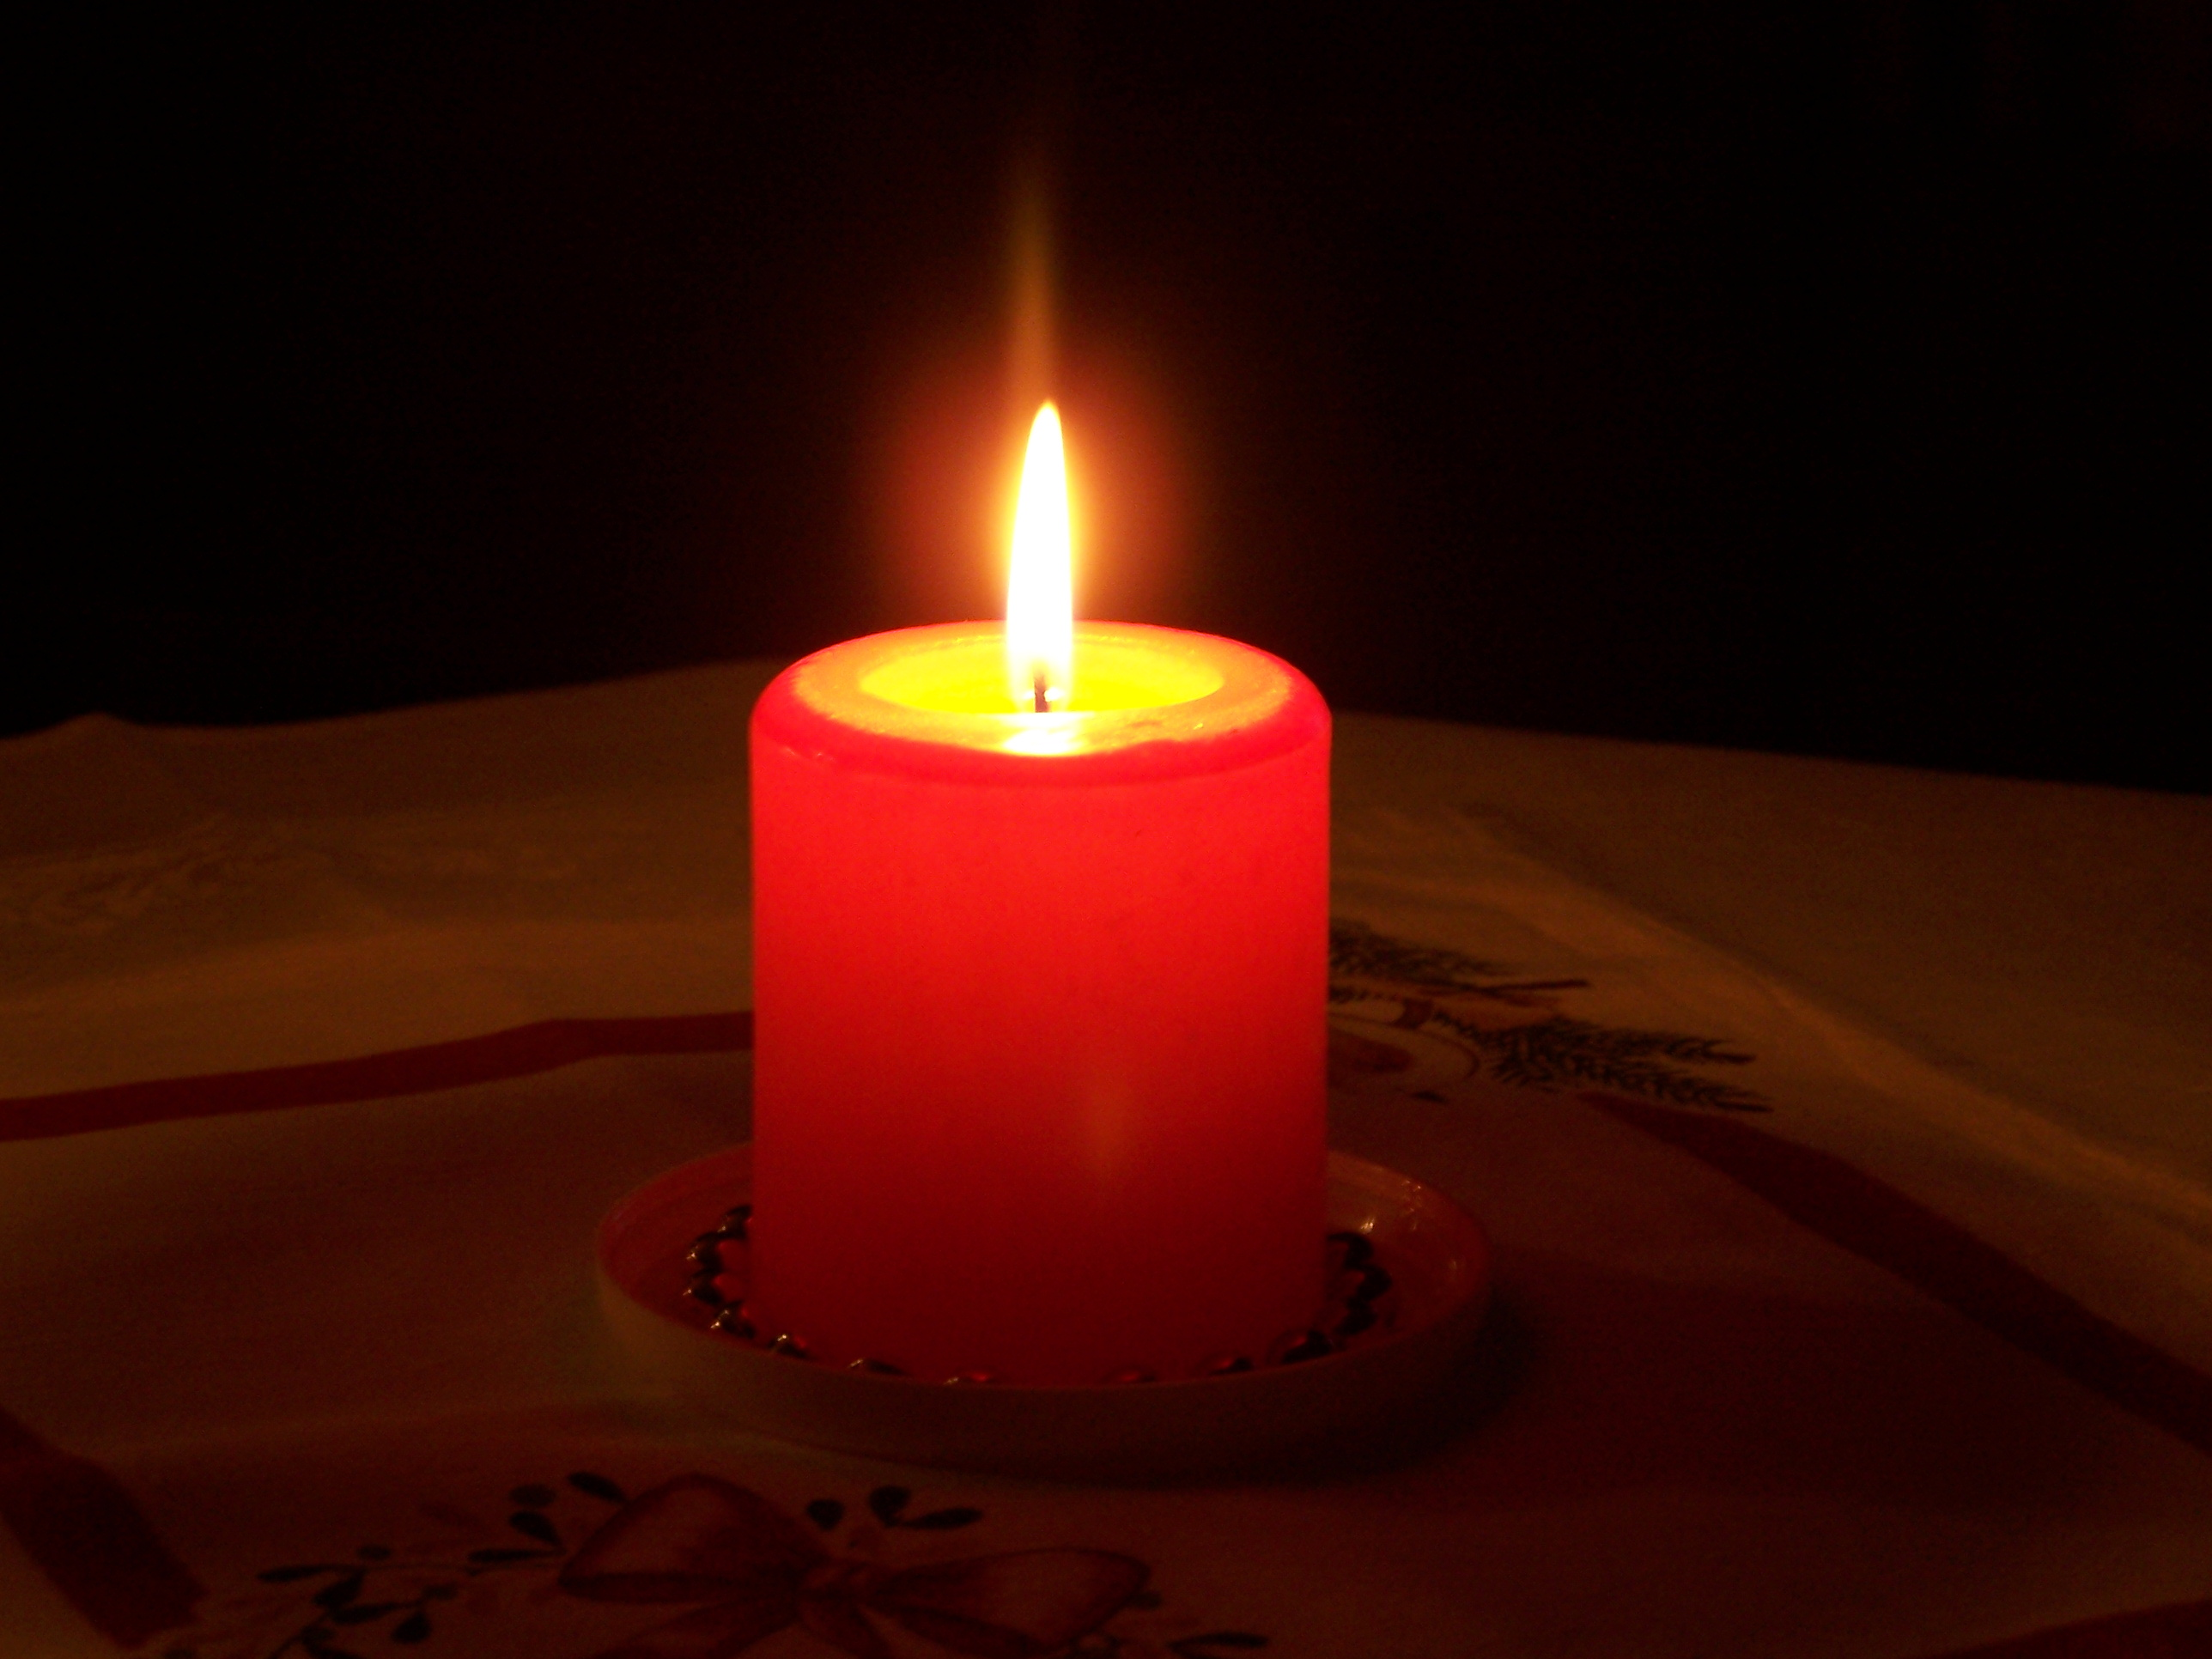 Take A Candle Light A Room Essayprompts